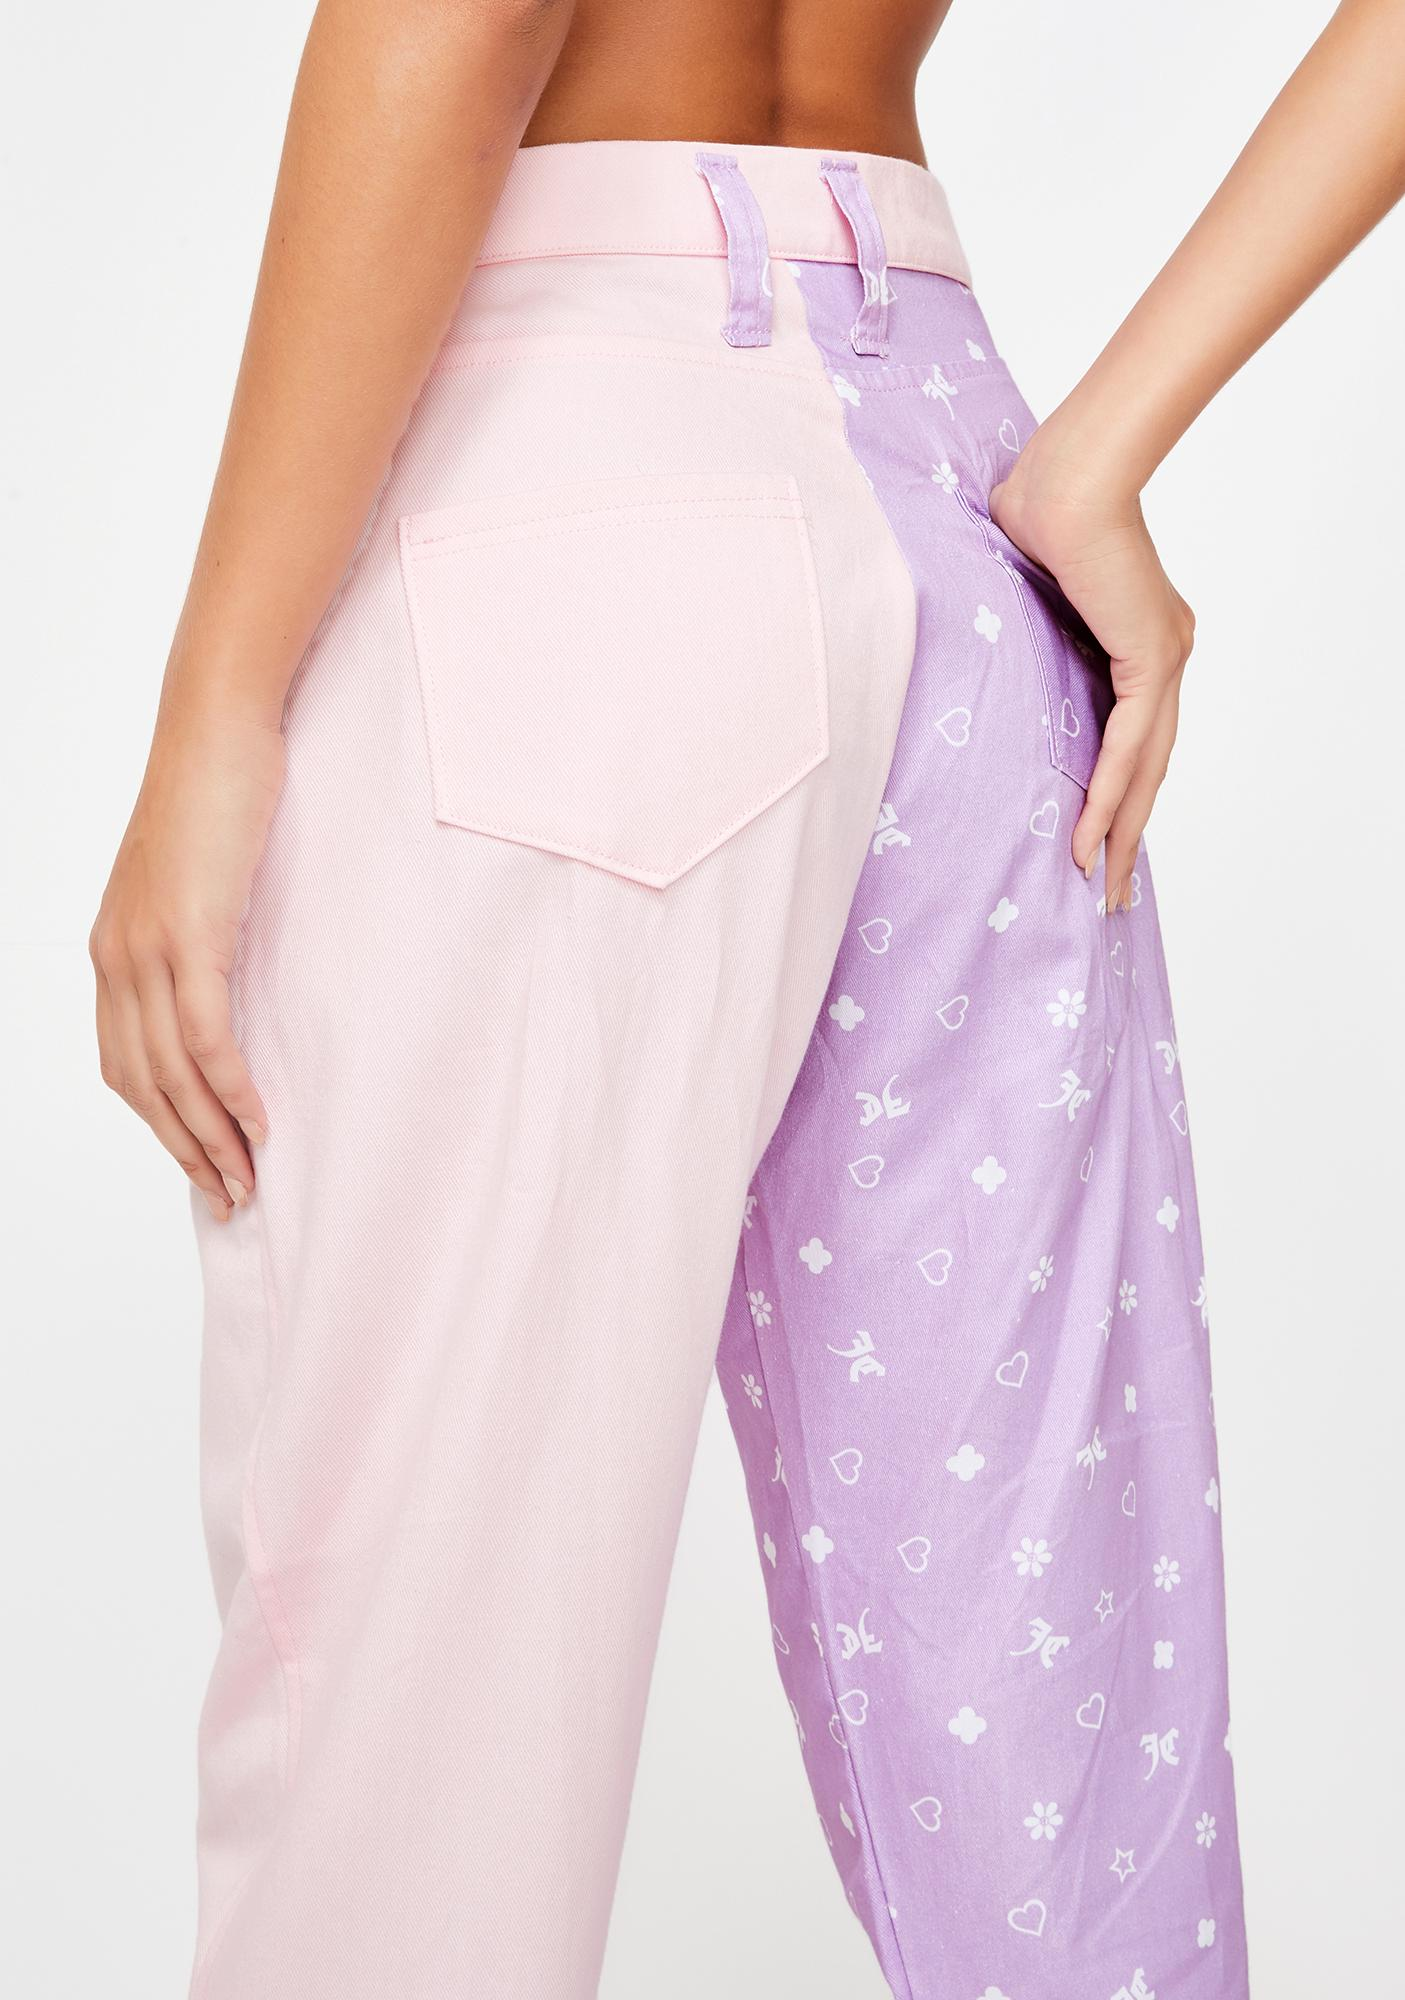 JUNGLECLUB CLOTHING Pink N' Lilac Mismatch Trousers